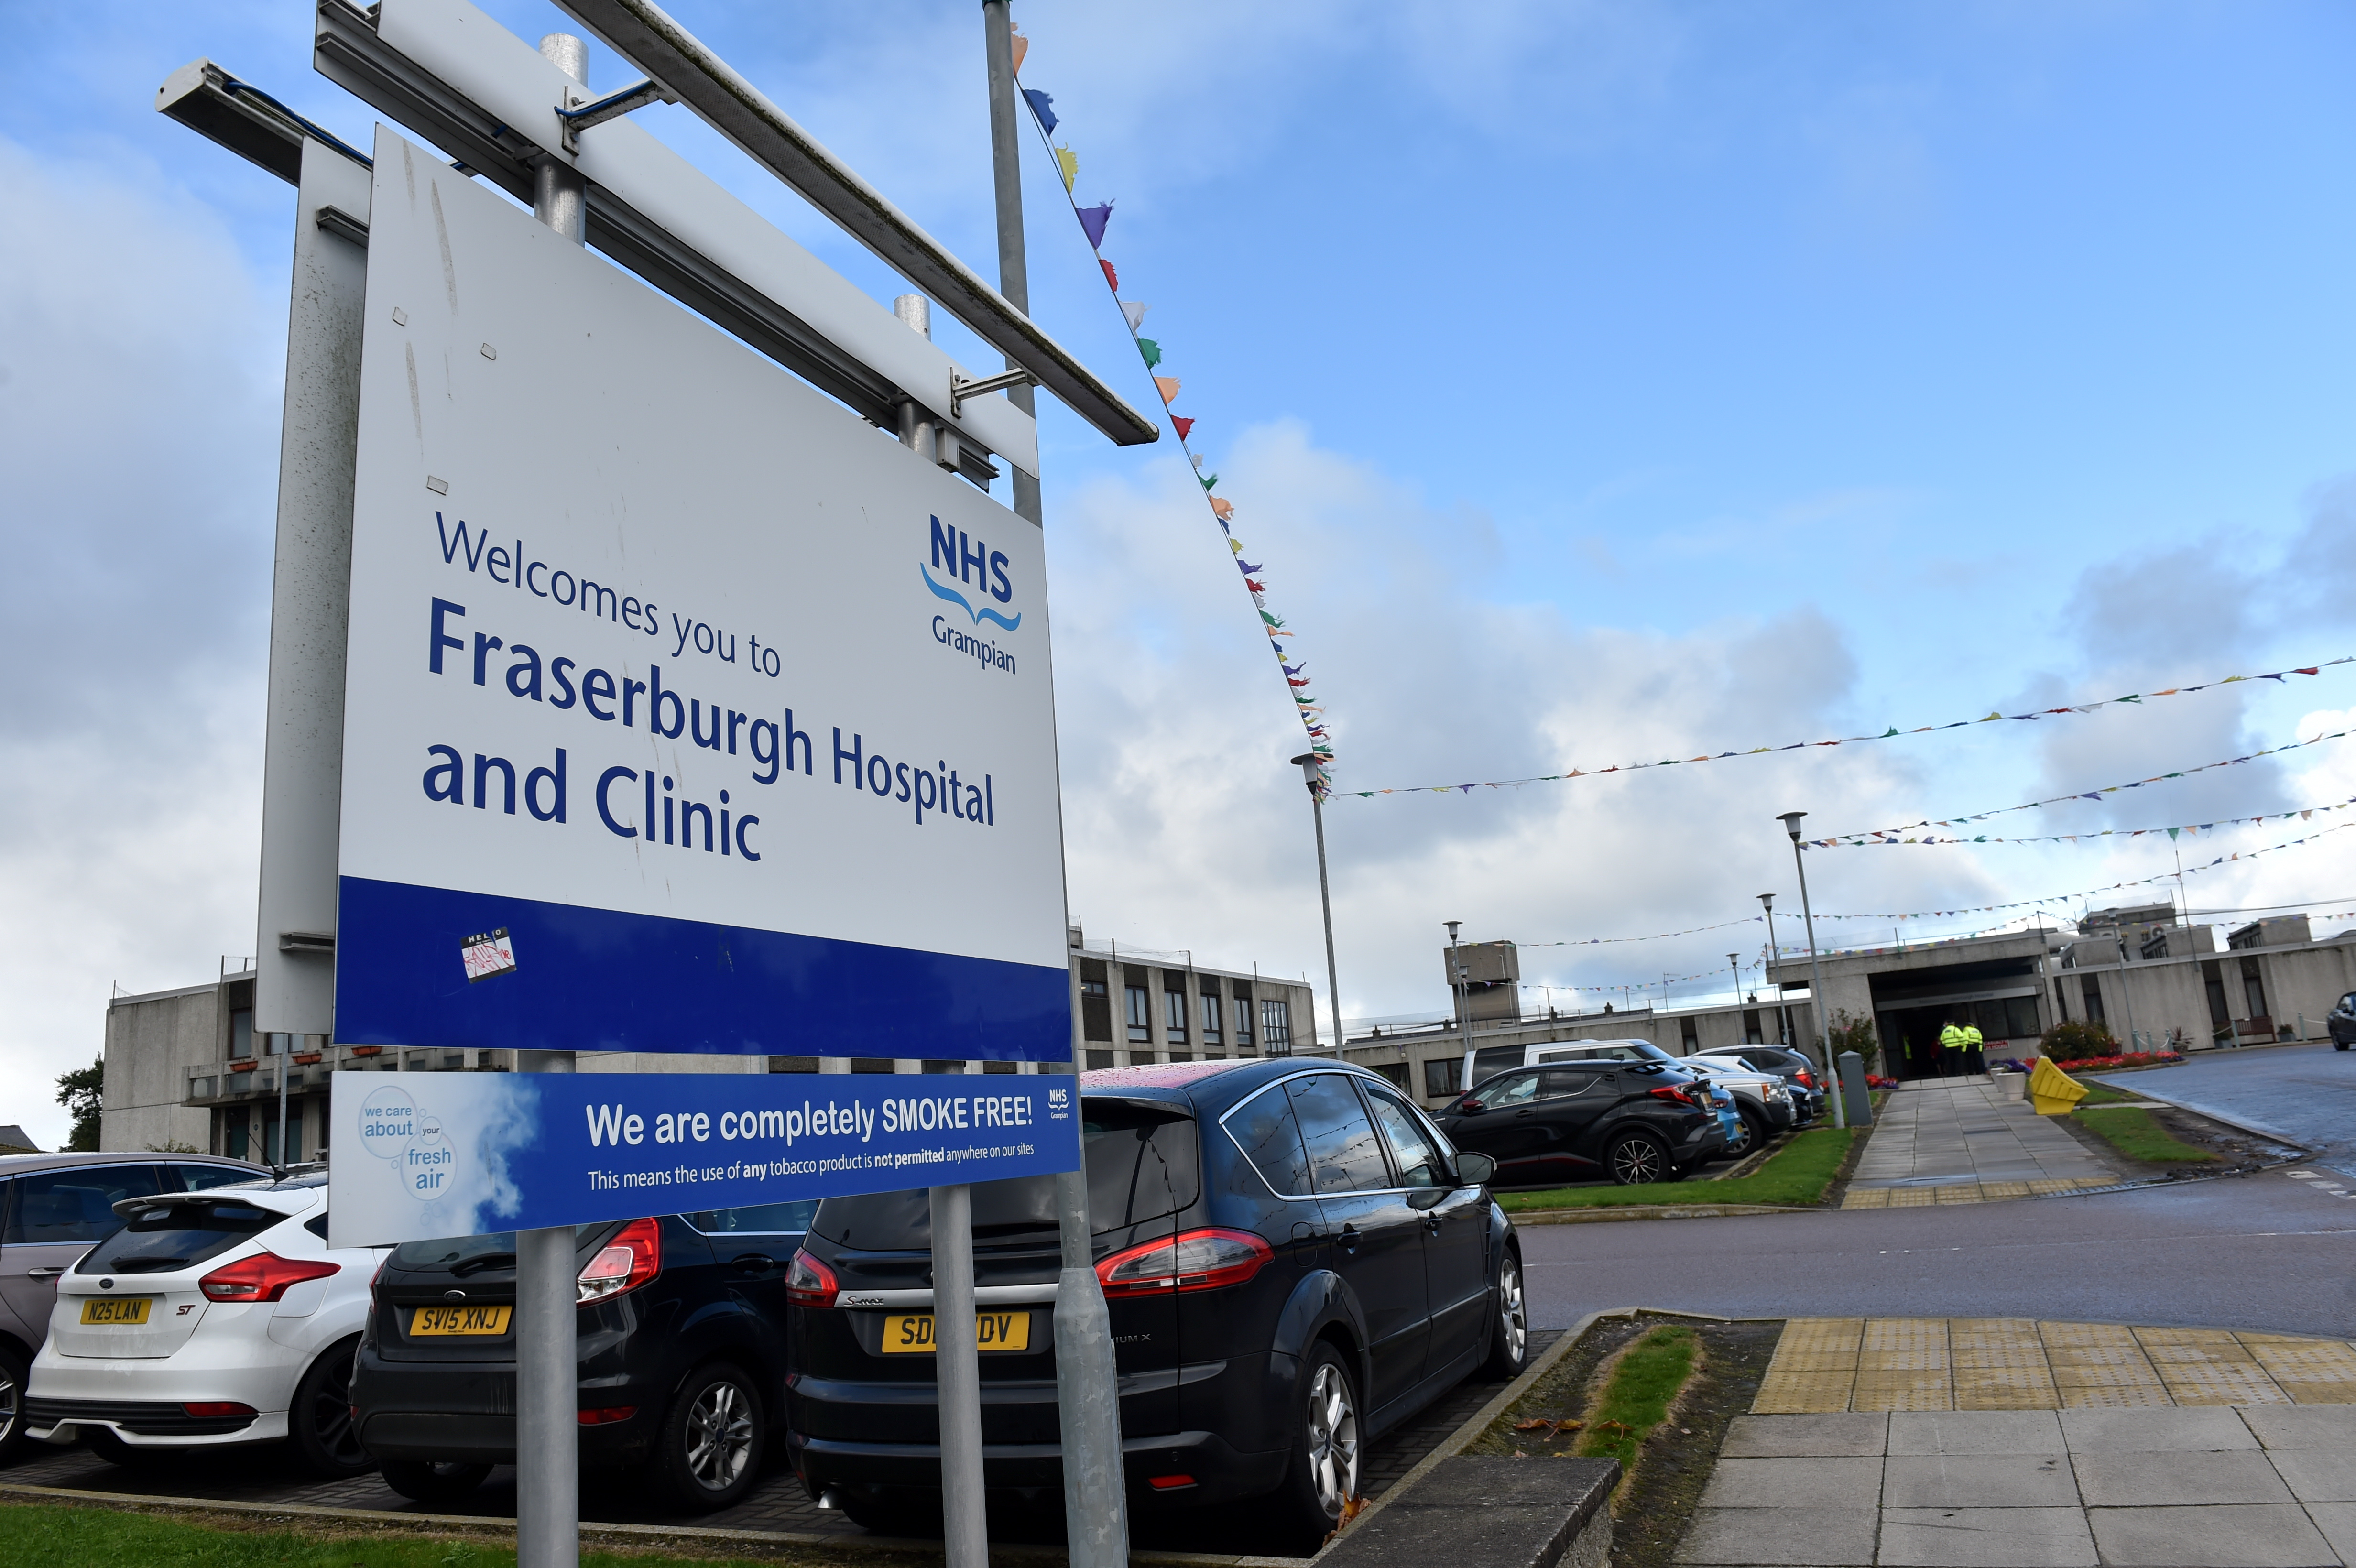 Jane Onoh volunteered as a radiologist at Fraserburgh Hospital in 2017.